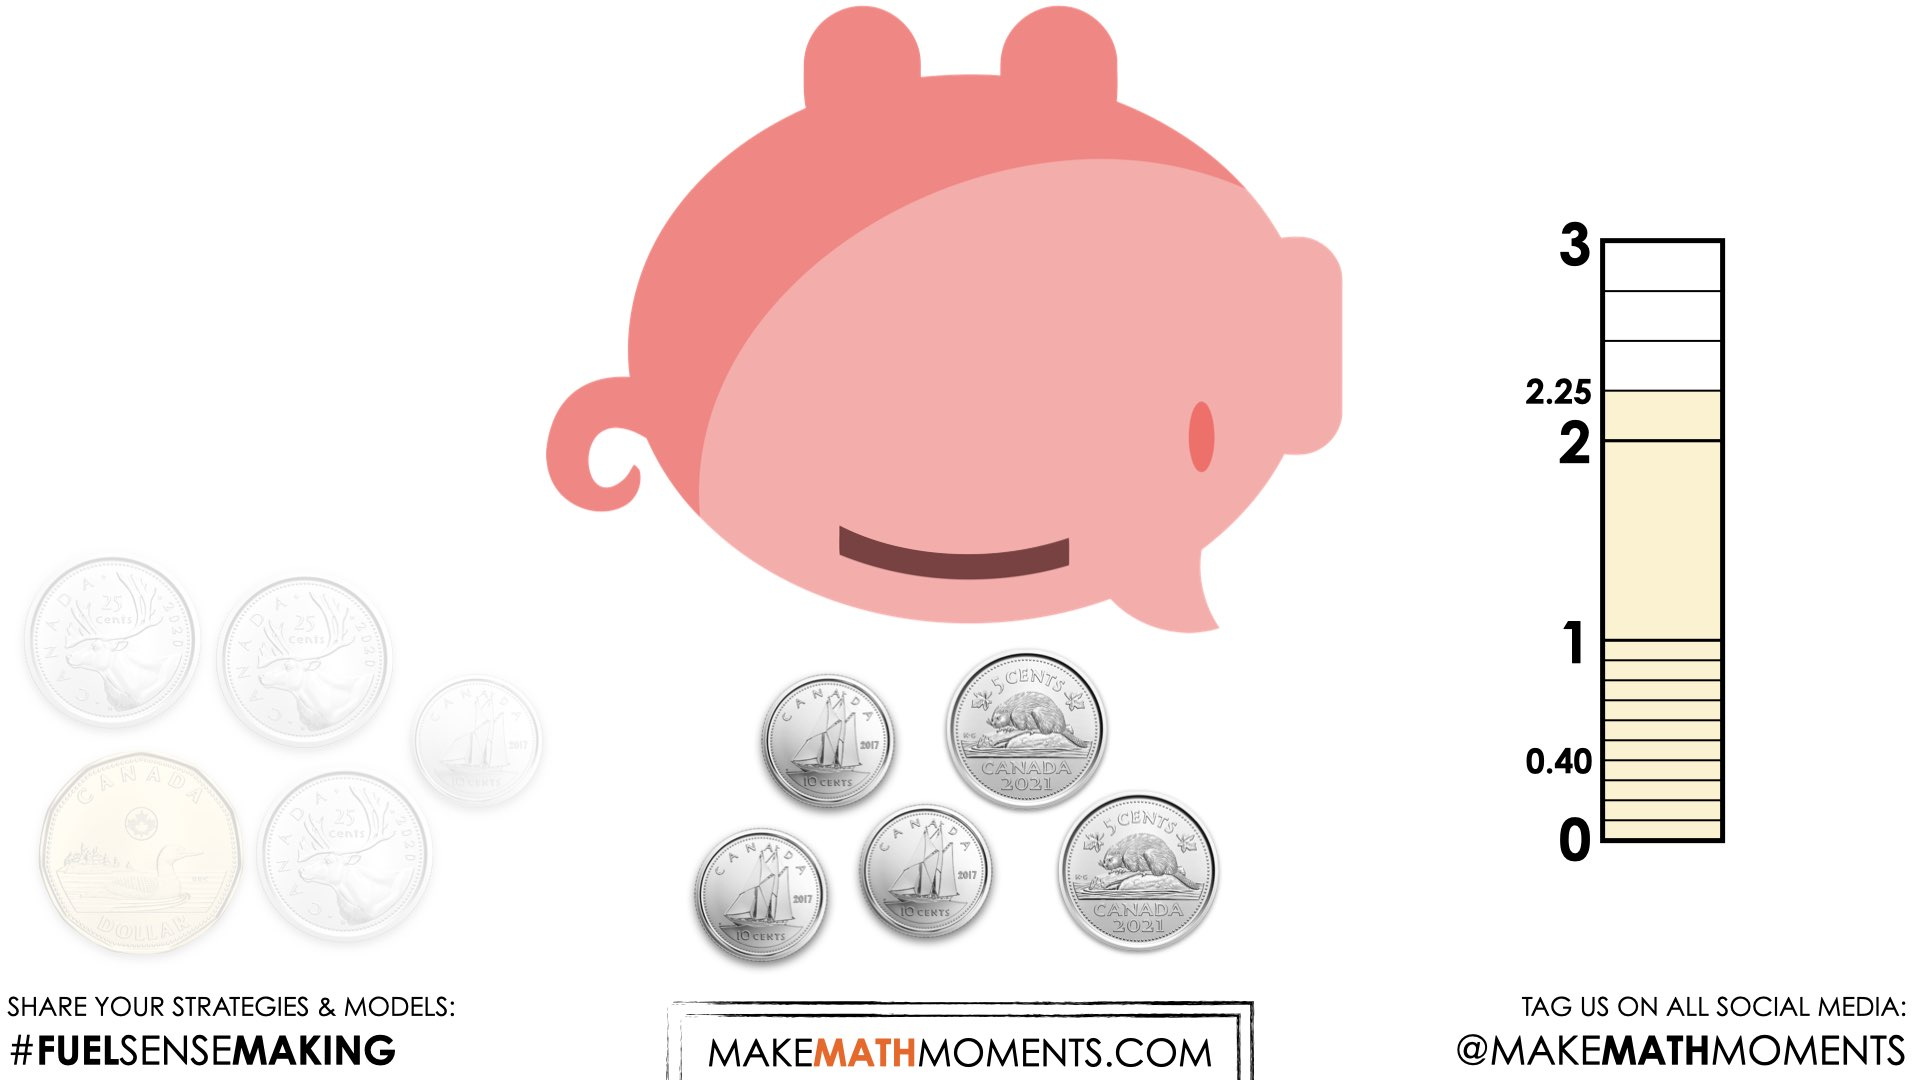 Piggy Bank Revisited [Day 1] - How Much Was Removed - 08 - NEXT MOVES - Reveal Canadian Coins Image.001